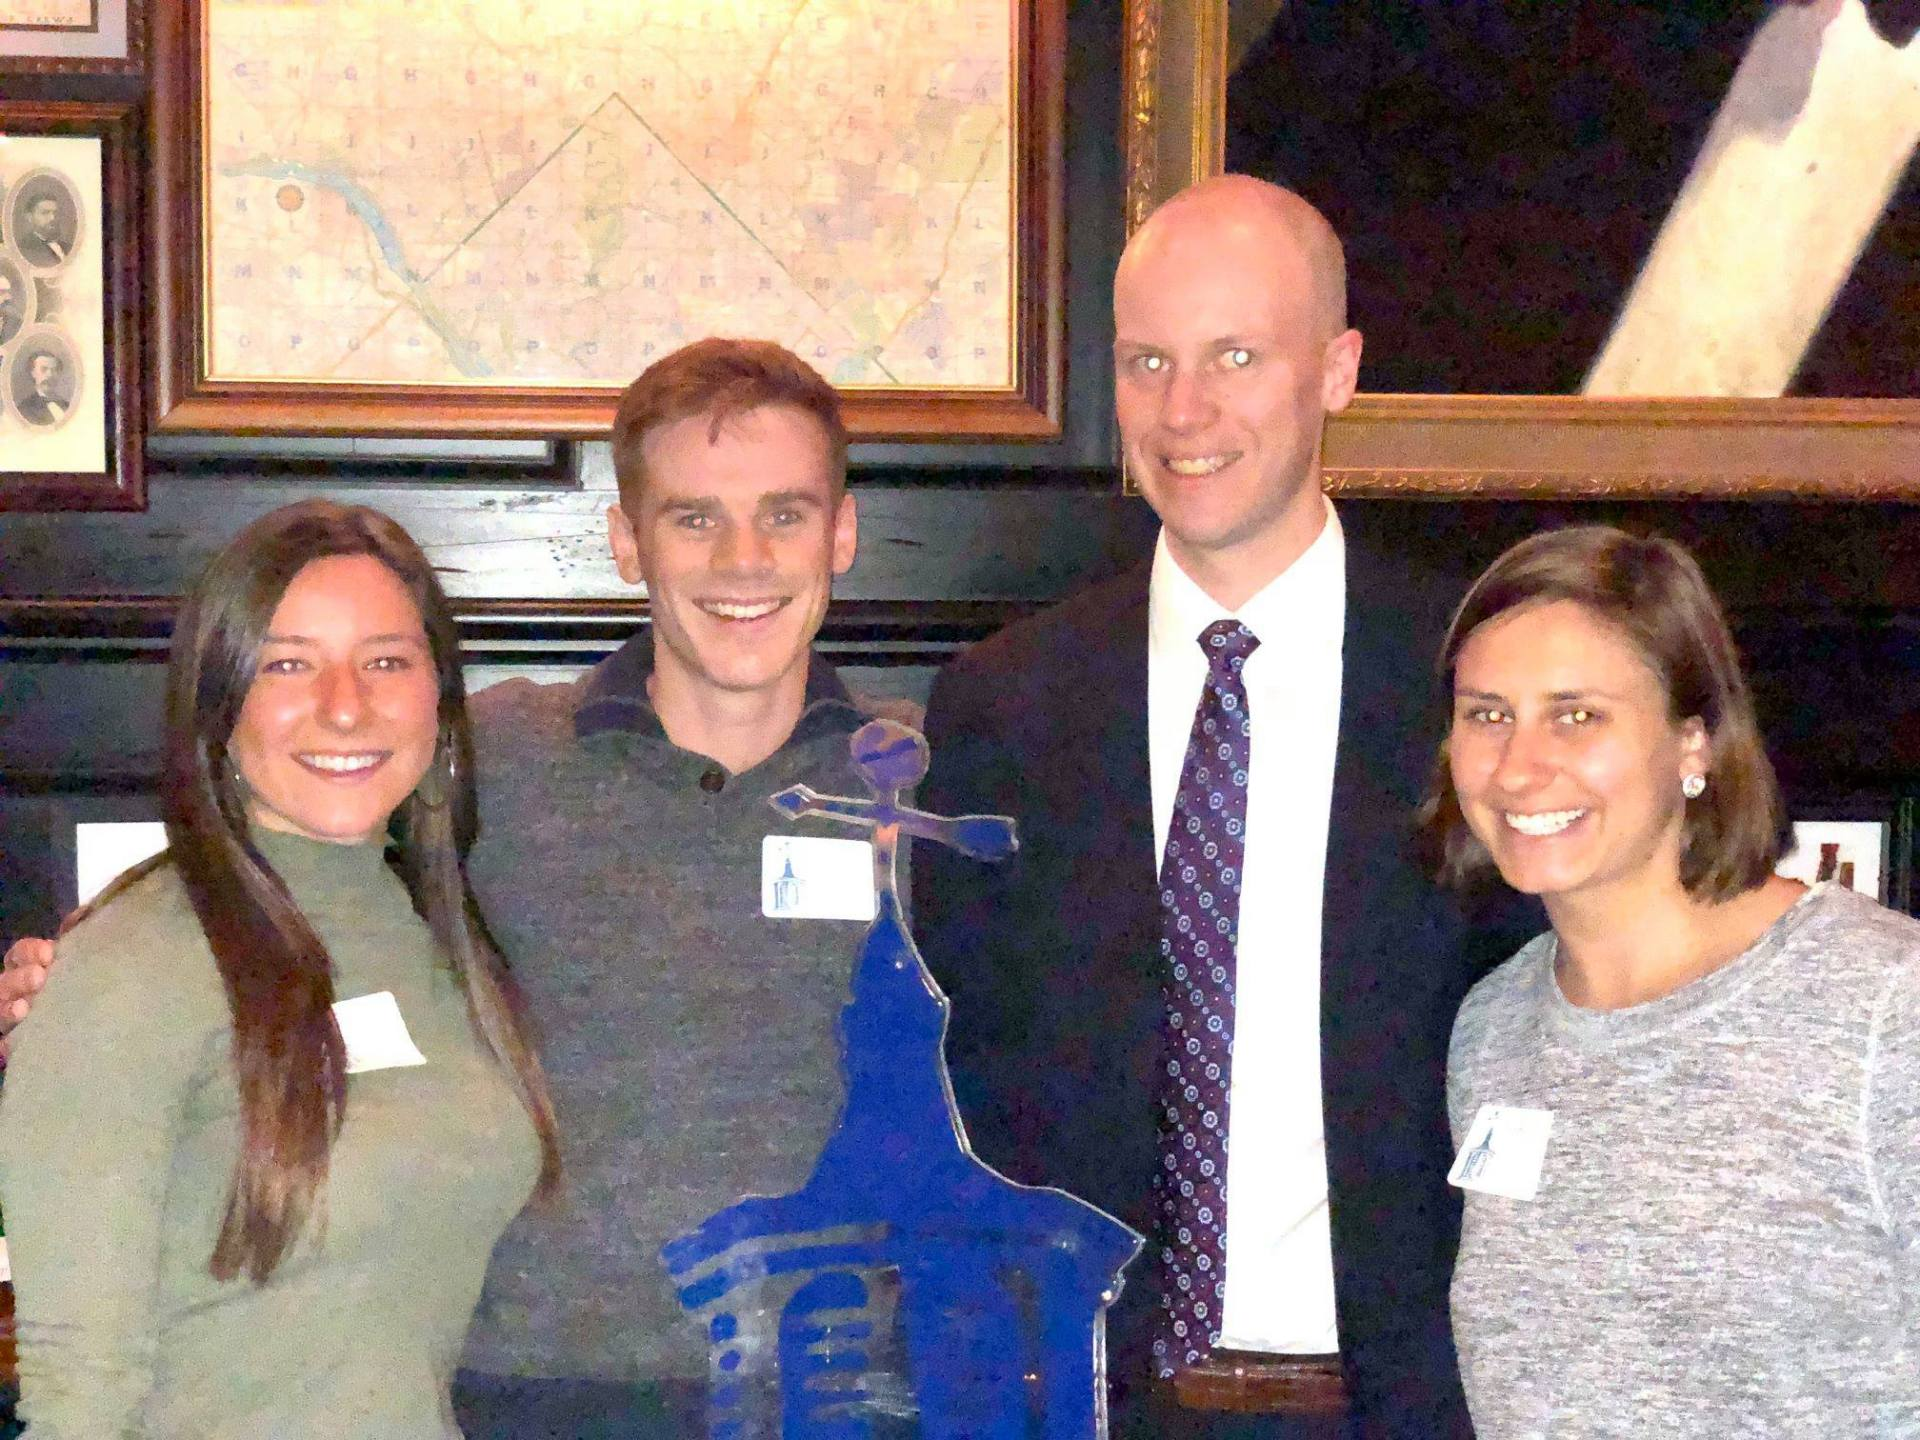 DC Alumni (left to right) Cammie Lonsway '14, Adam Sulier '11, William Hulse '08, and Audrey White '15.